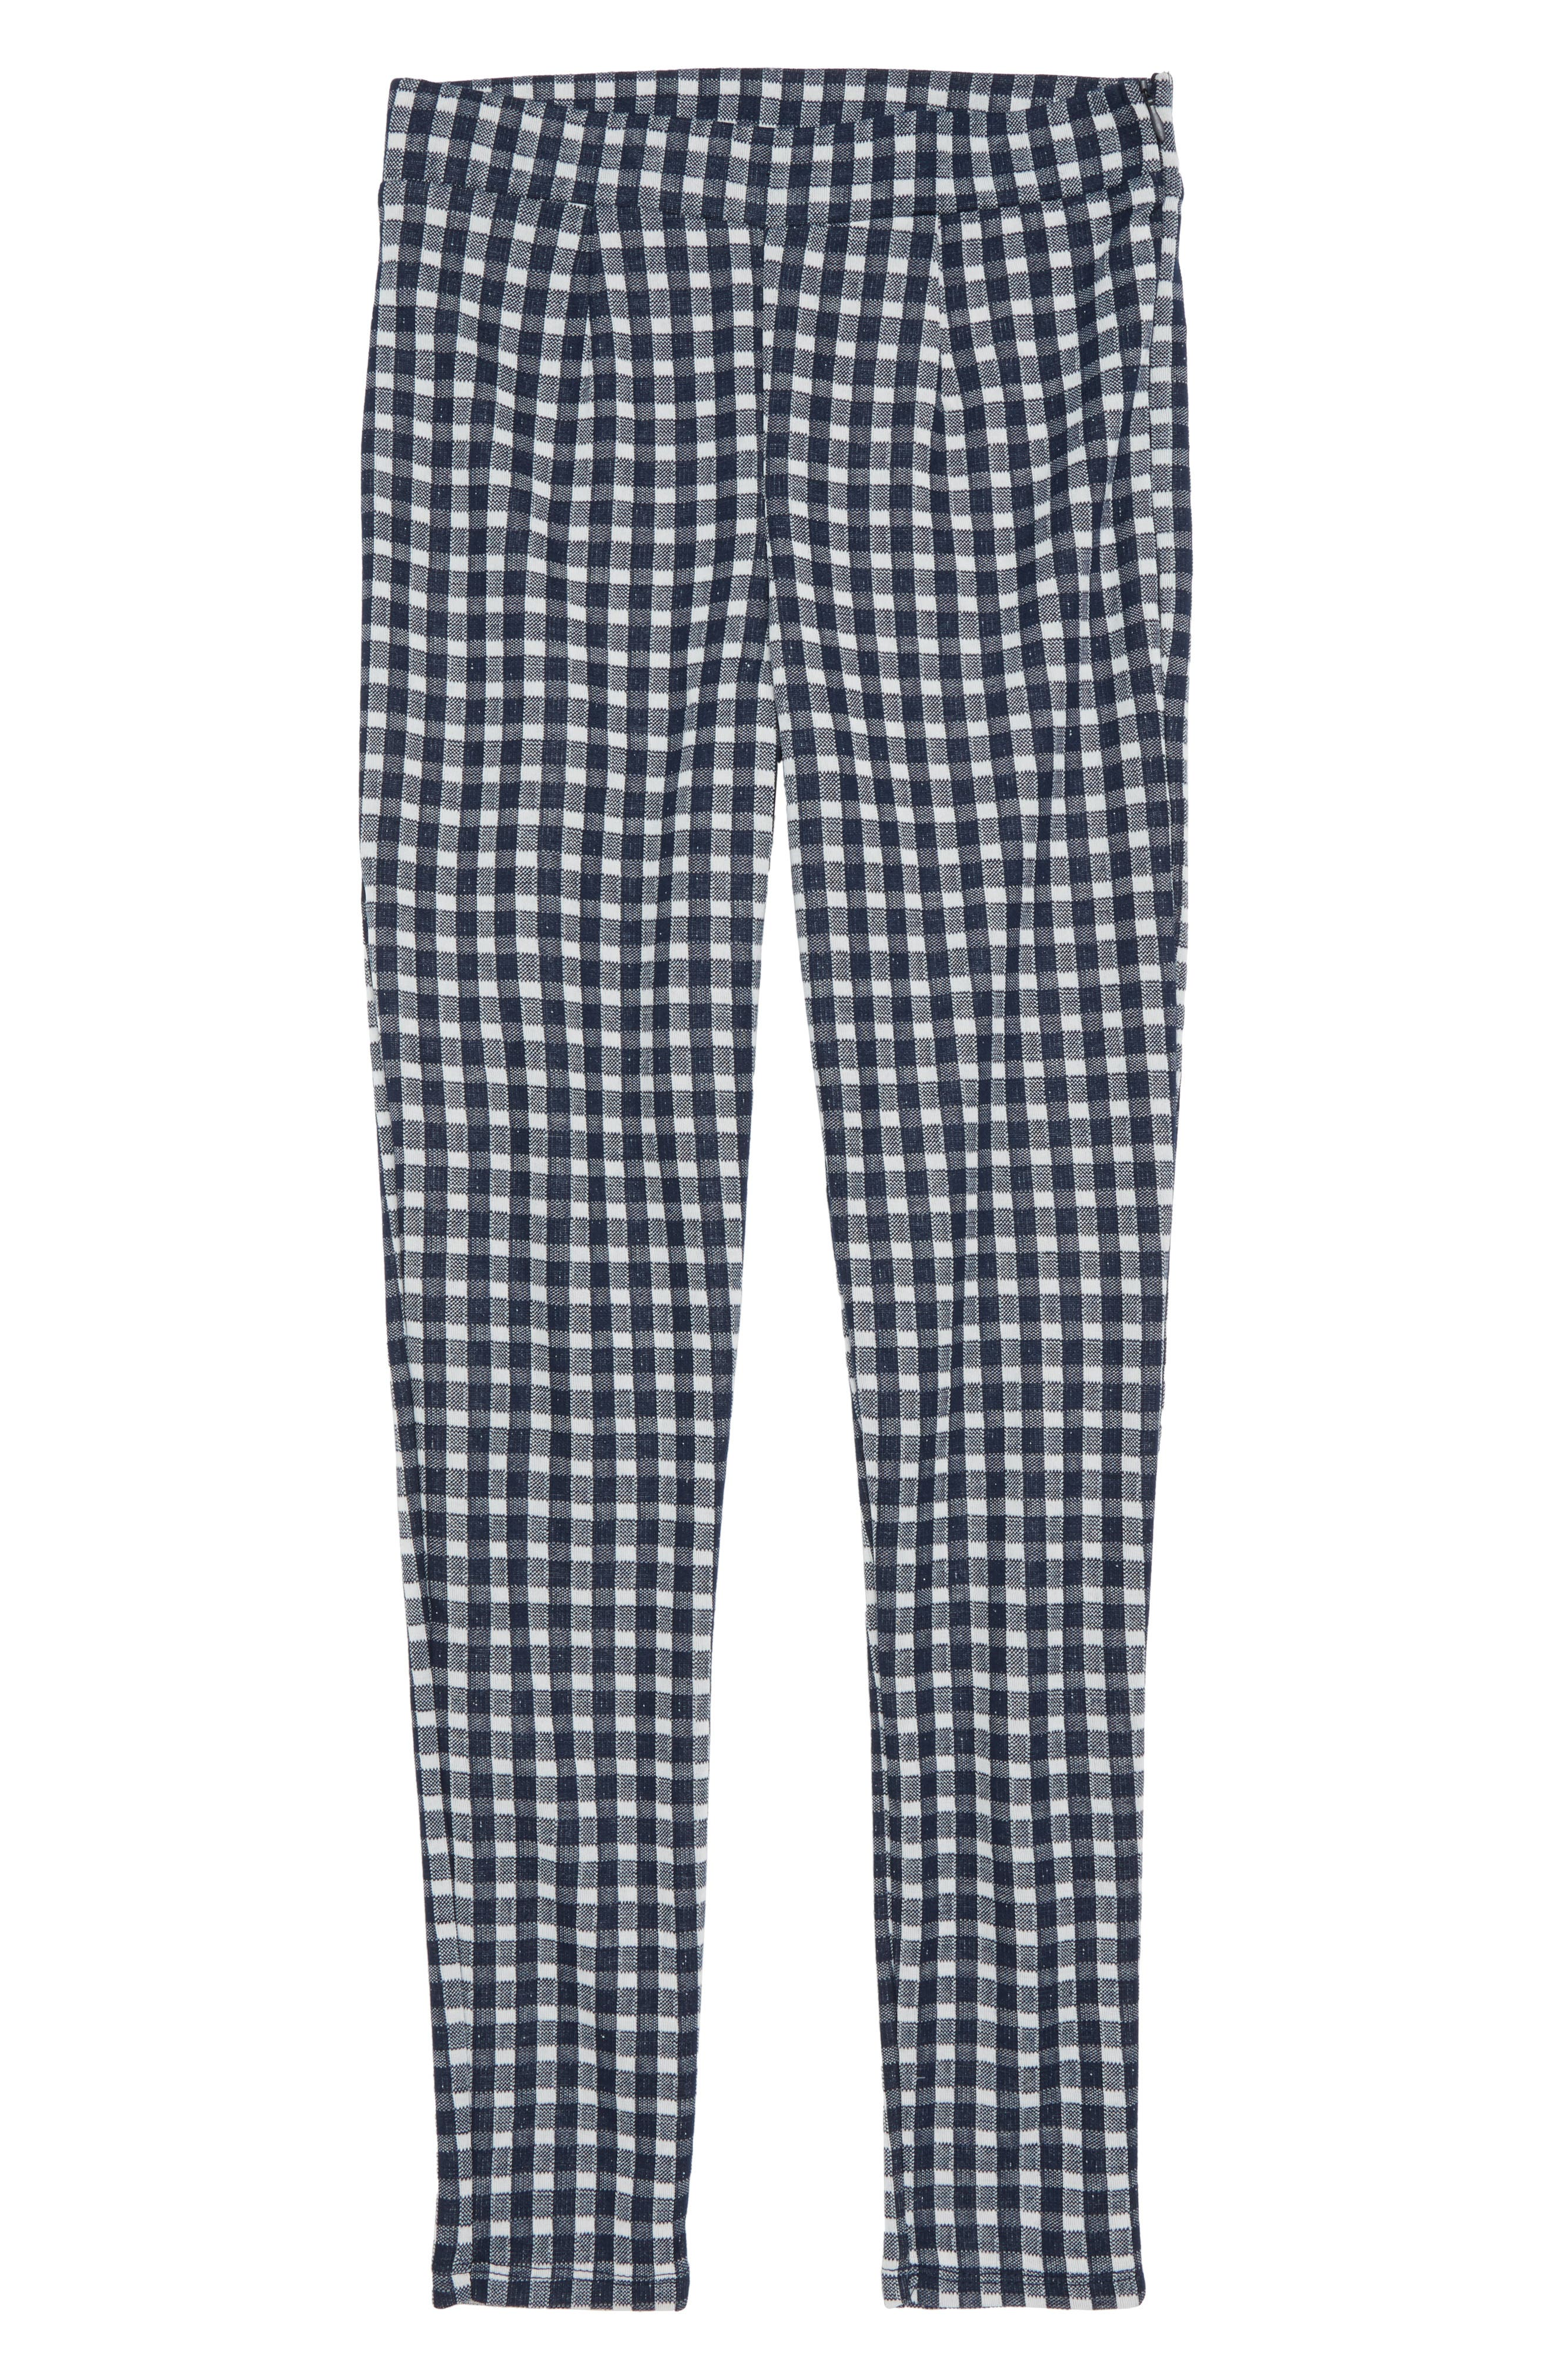 Plaid Pants,                             Main thumbnail 1, color,                             410